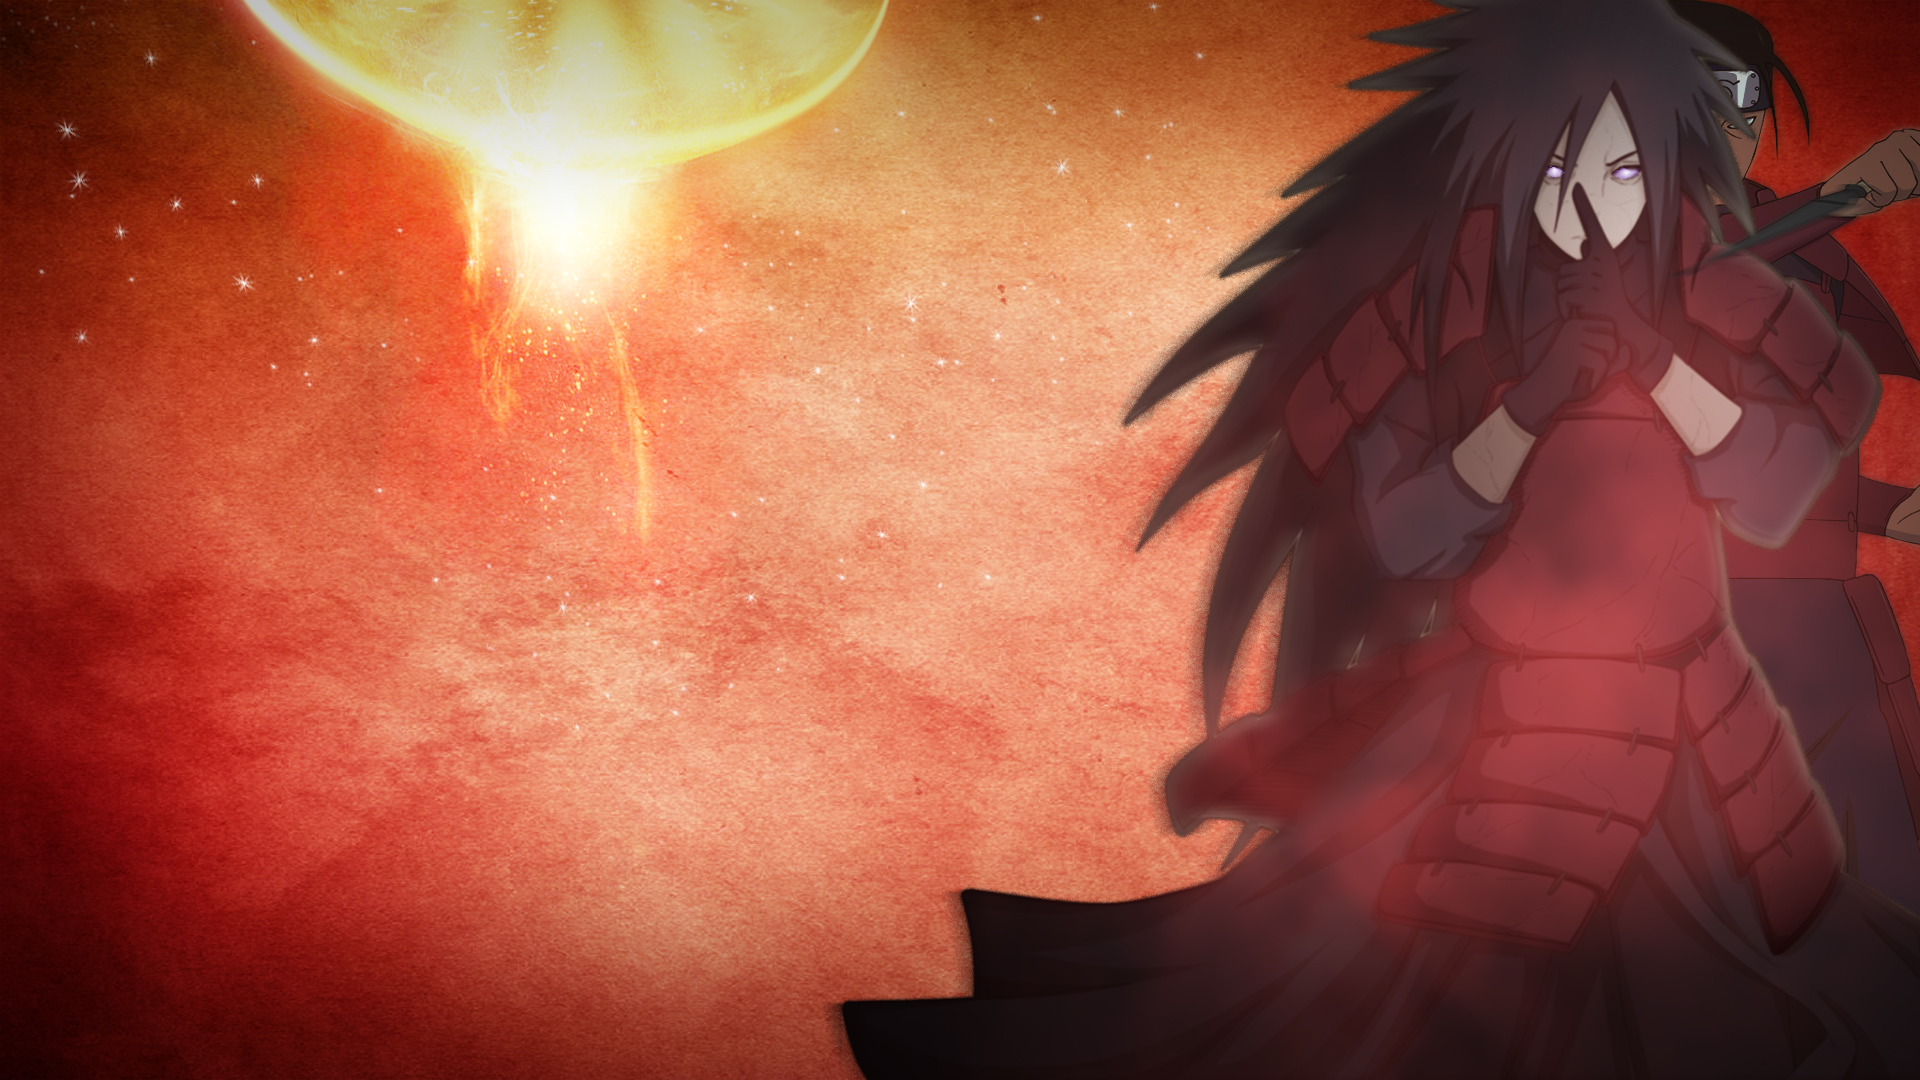 wallpaper madara uchiha by xtremsk customization wallpaper hdtv 1920x1080